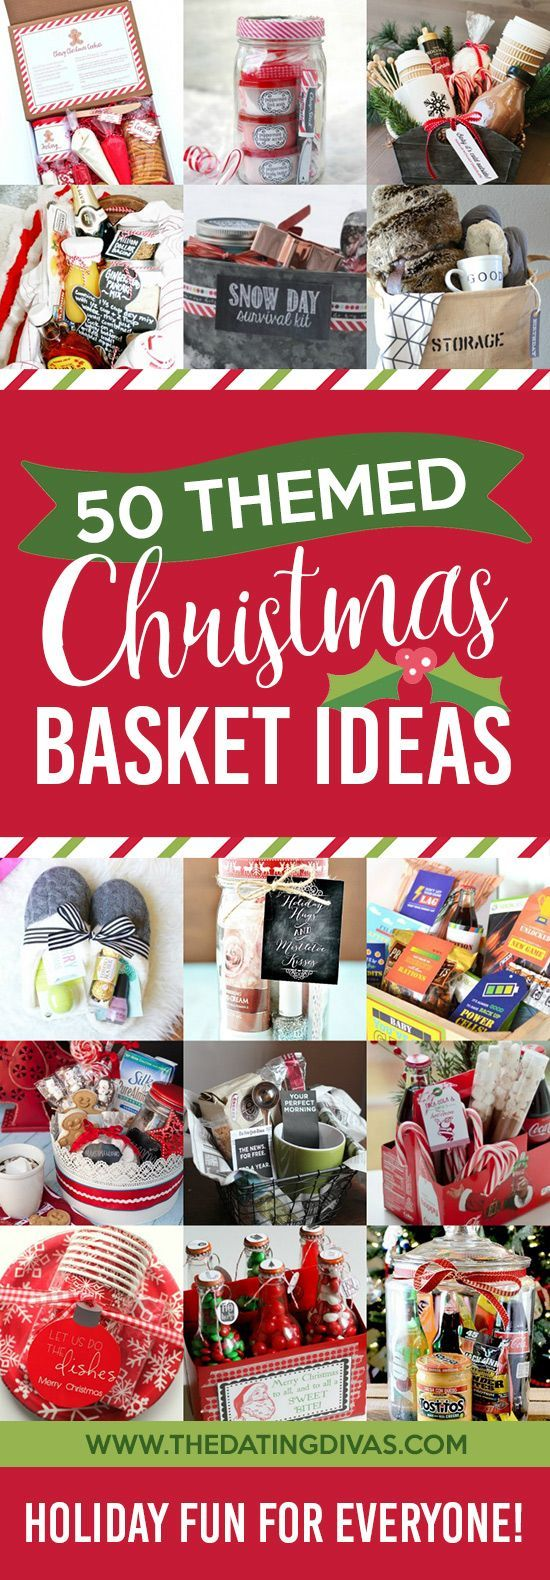 Homemade Christmas Gifts Ideas For Kids - 50 themed christmas basket ideas